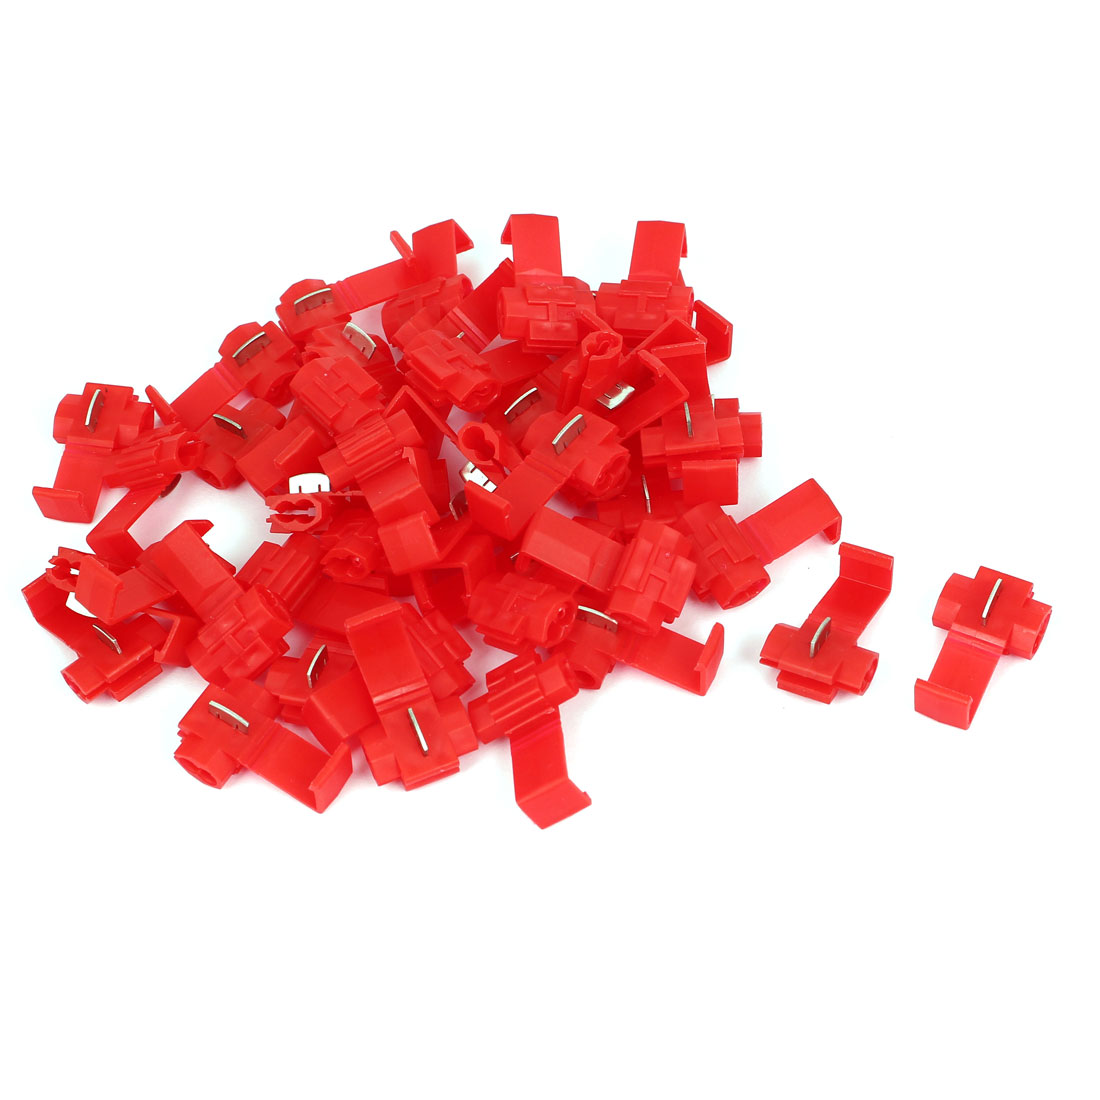 45 Pcs Red Plastic 2 Holes Regulable Wire Installation Cord Cable Clip Holder